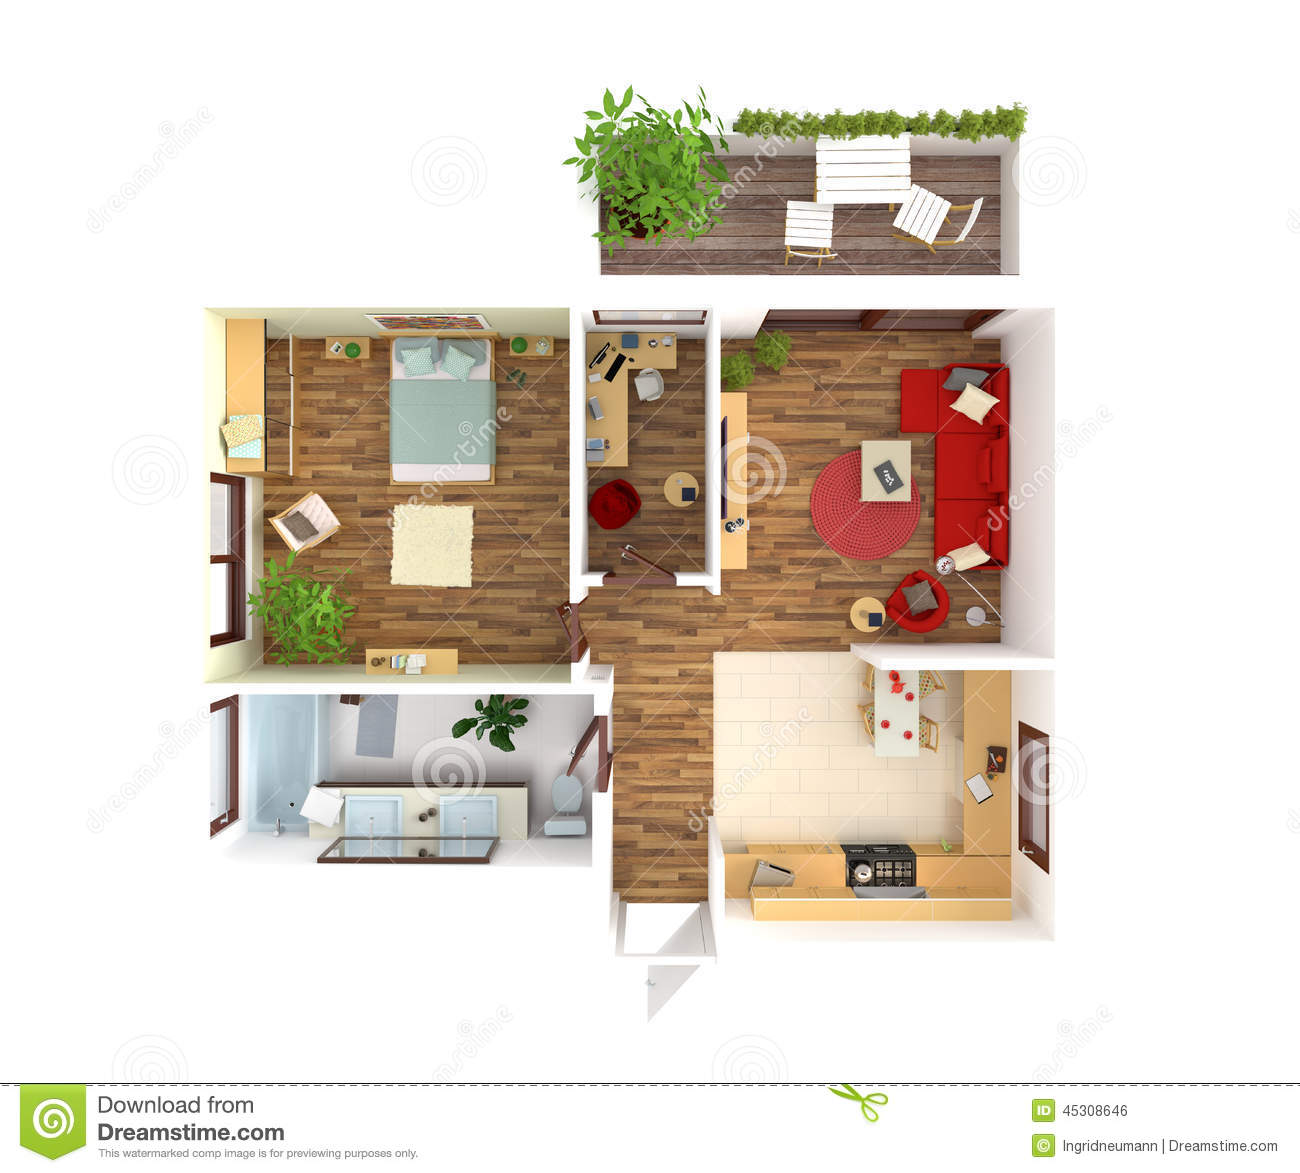 Design Drawings For House